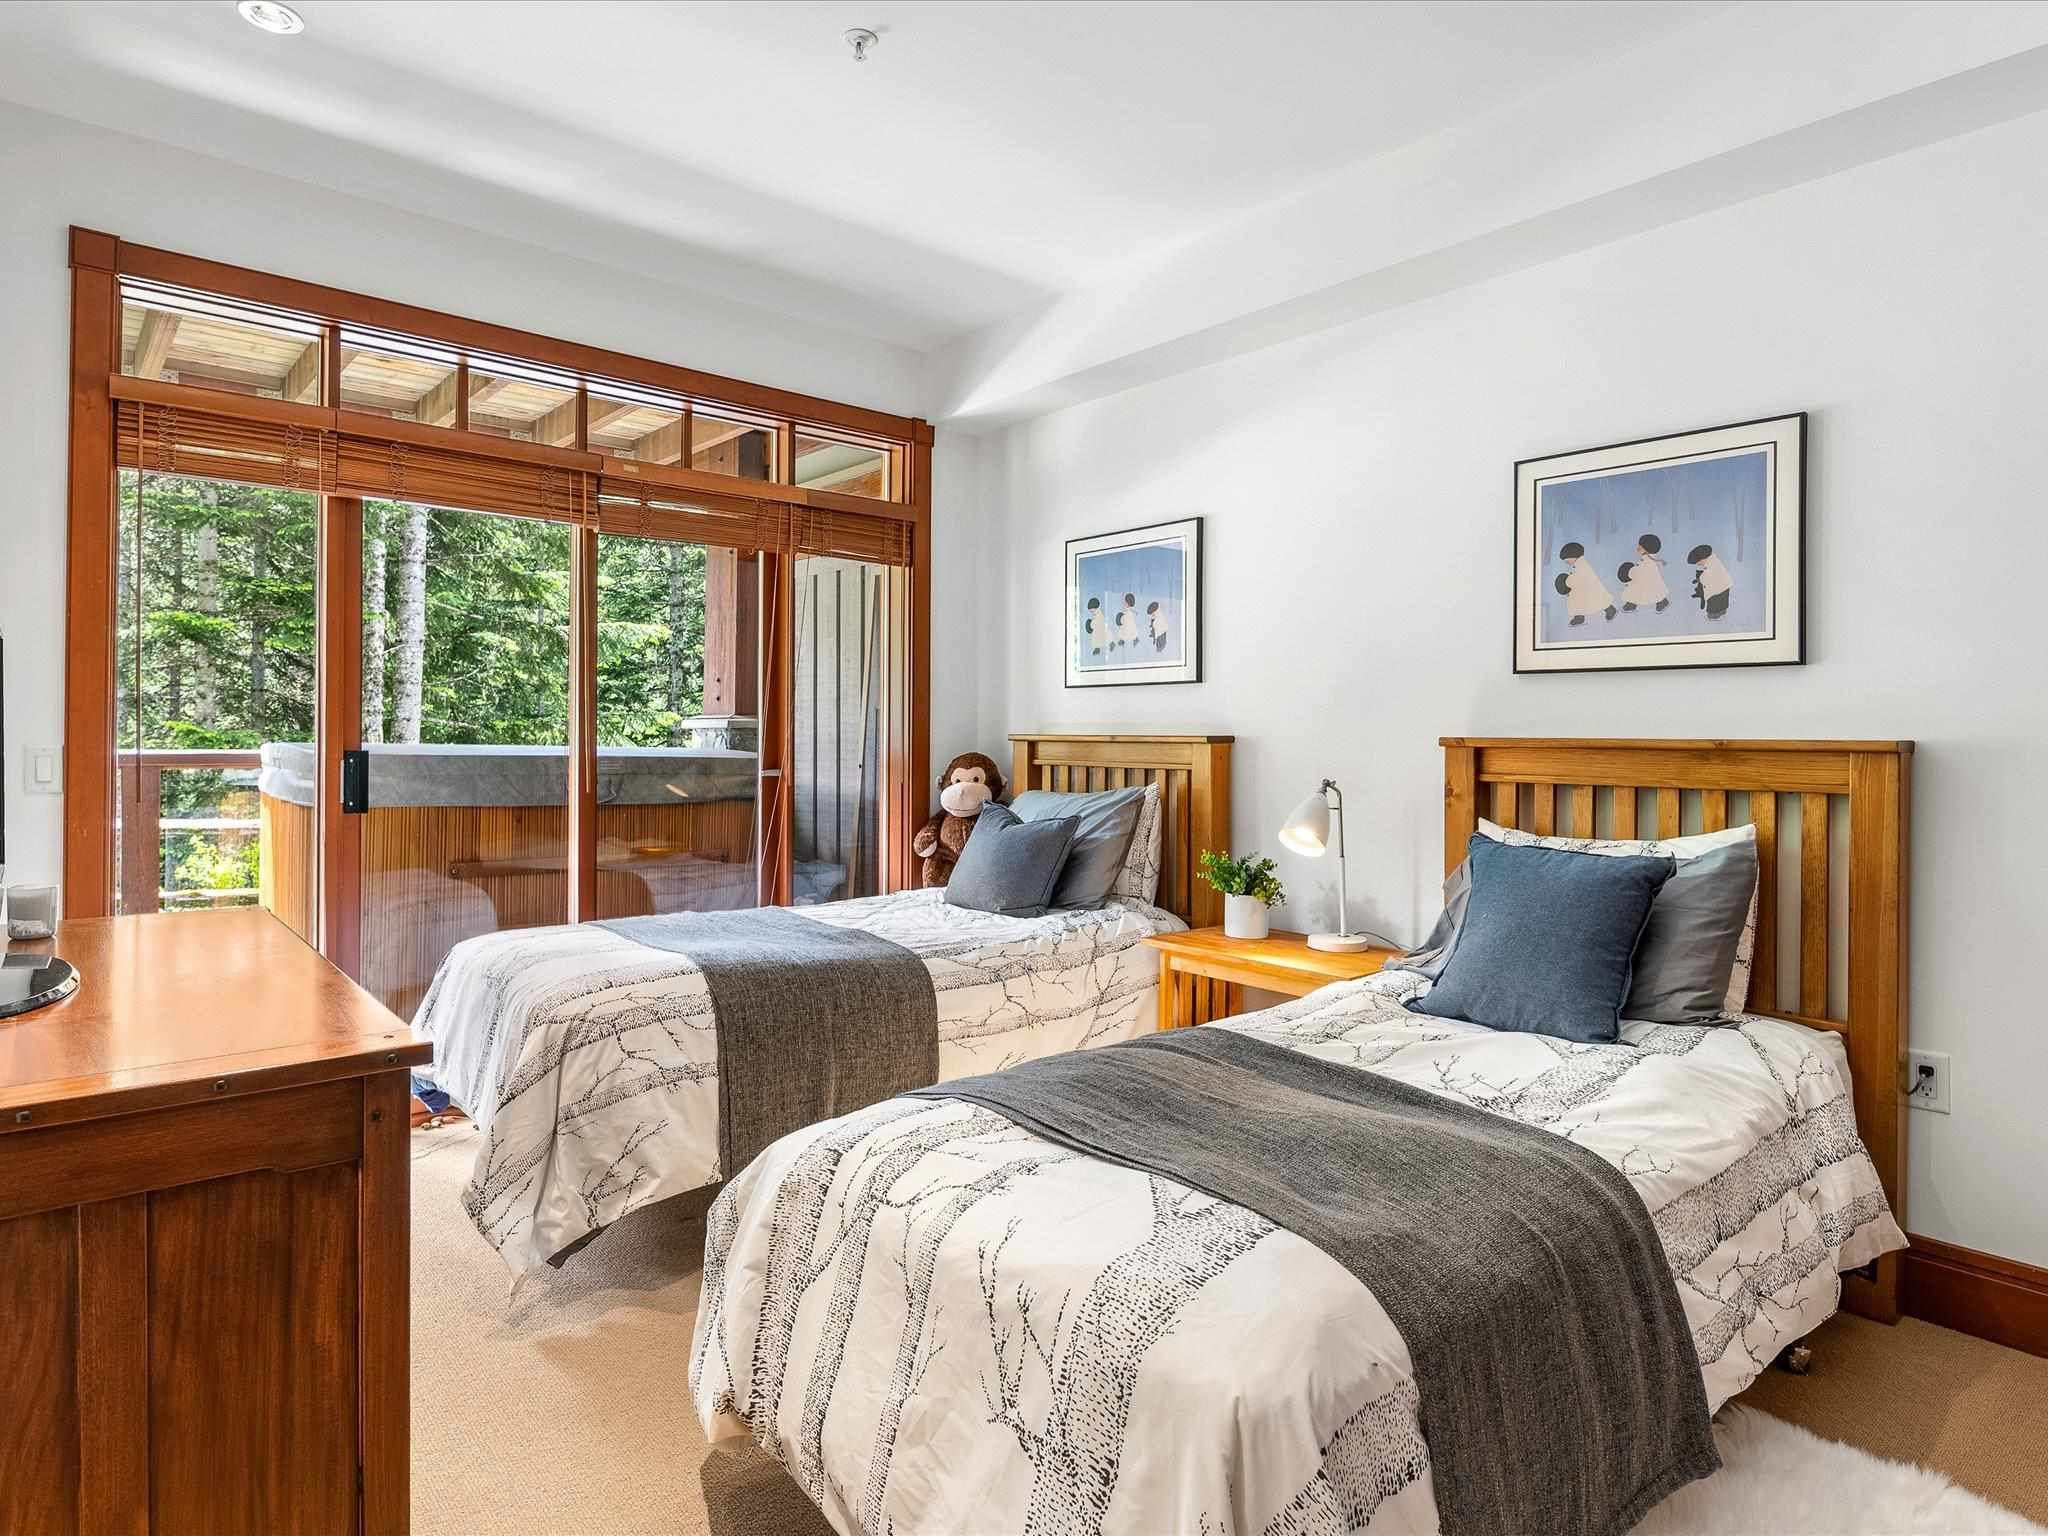 Photo 12: Photos: 4 2500 TALUSWOOD PLACE in Whistler: Nordic Townhouse for sale : MLS®# R2593995